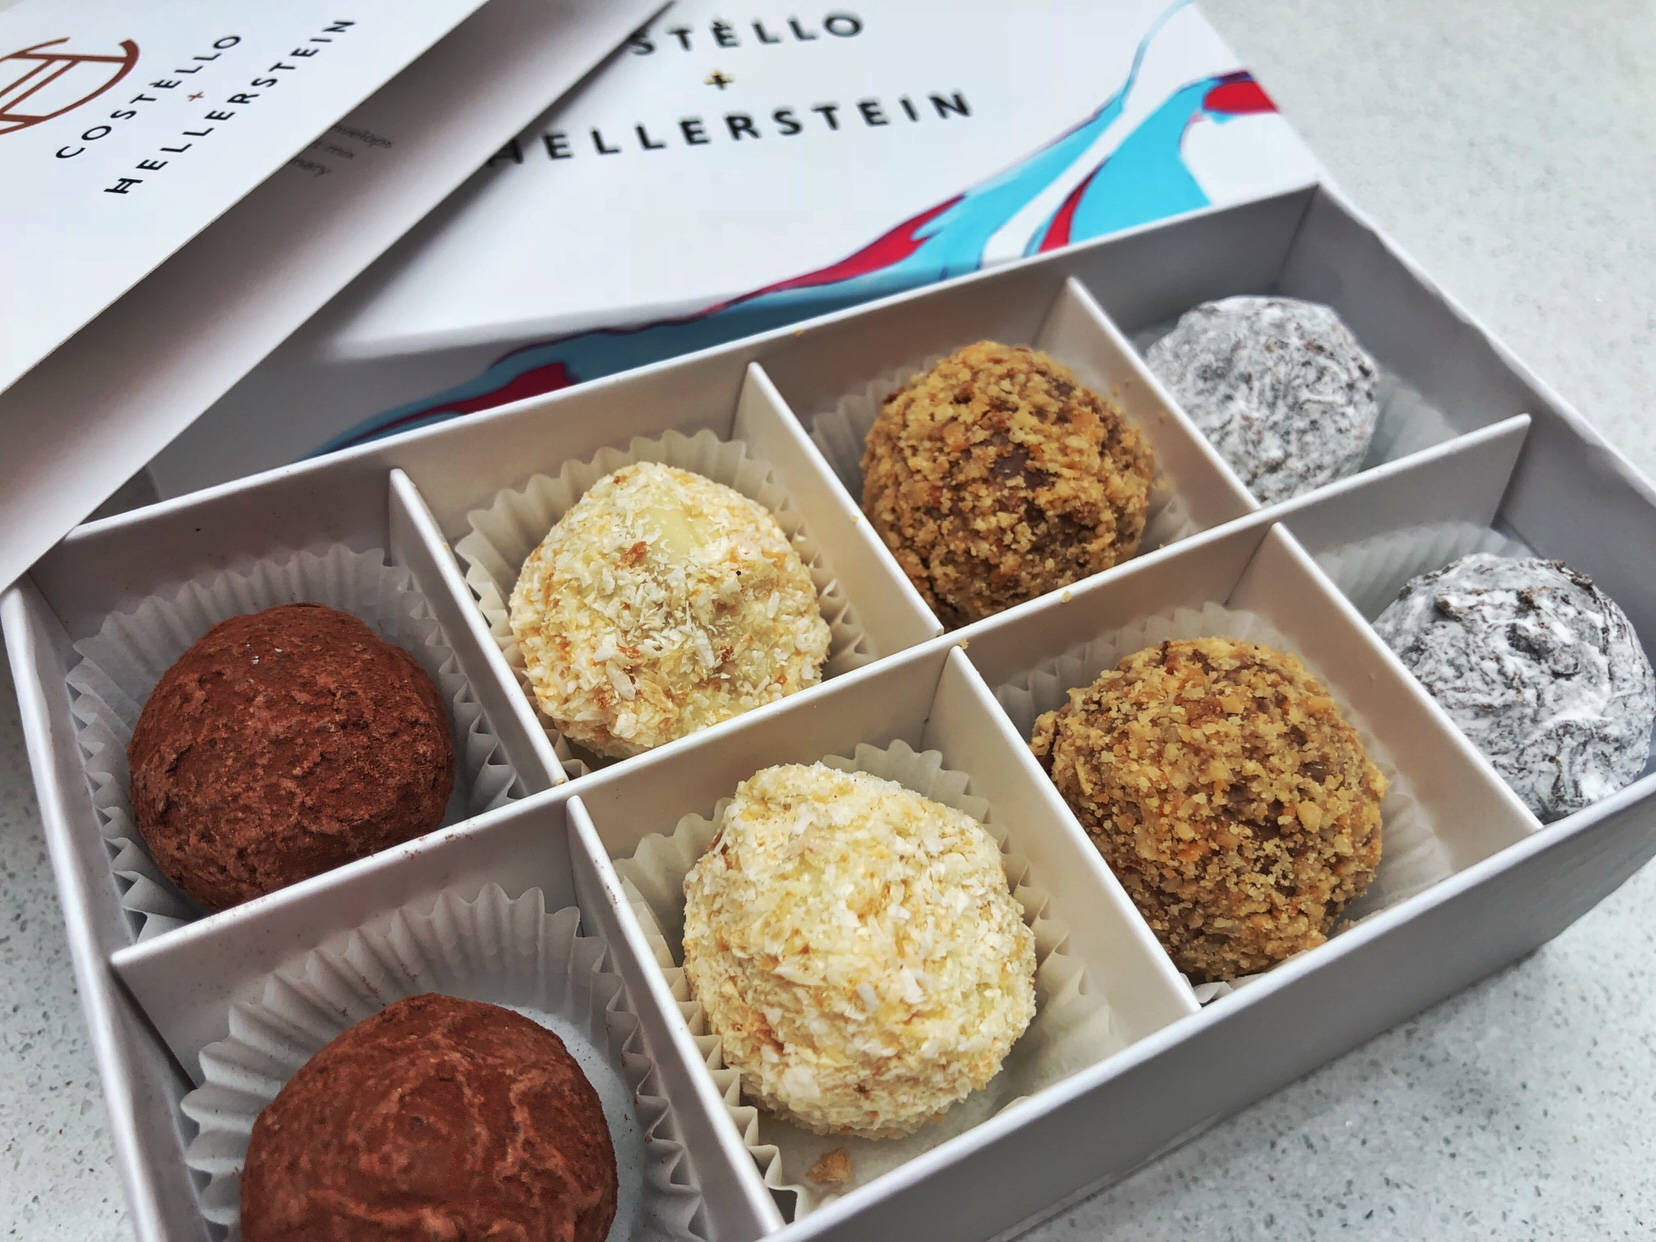 Costello and Hellerstein chocolate truffles